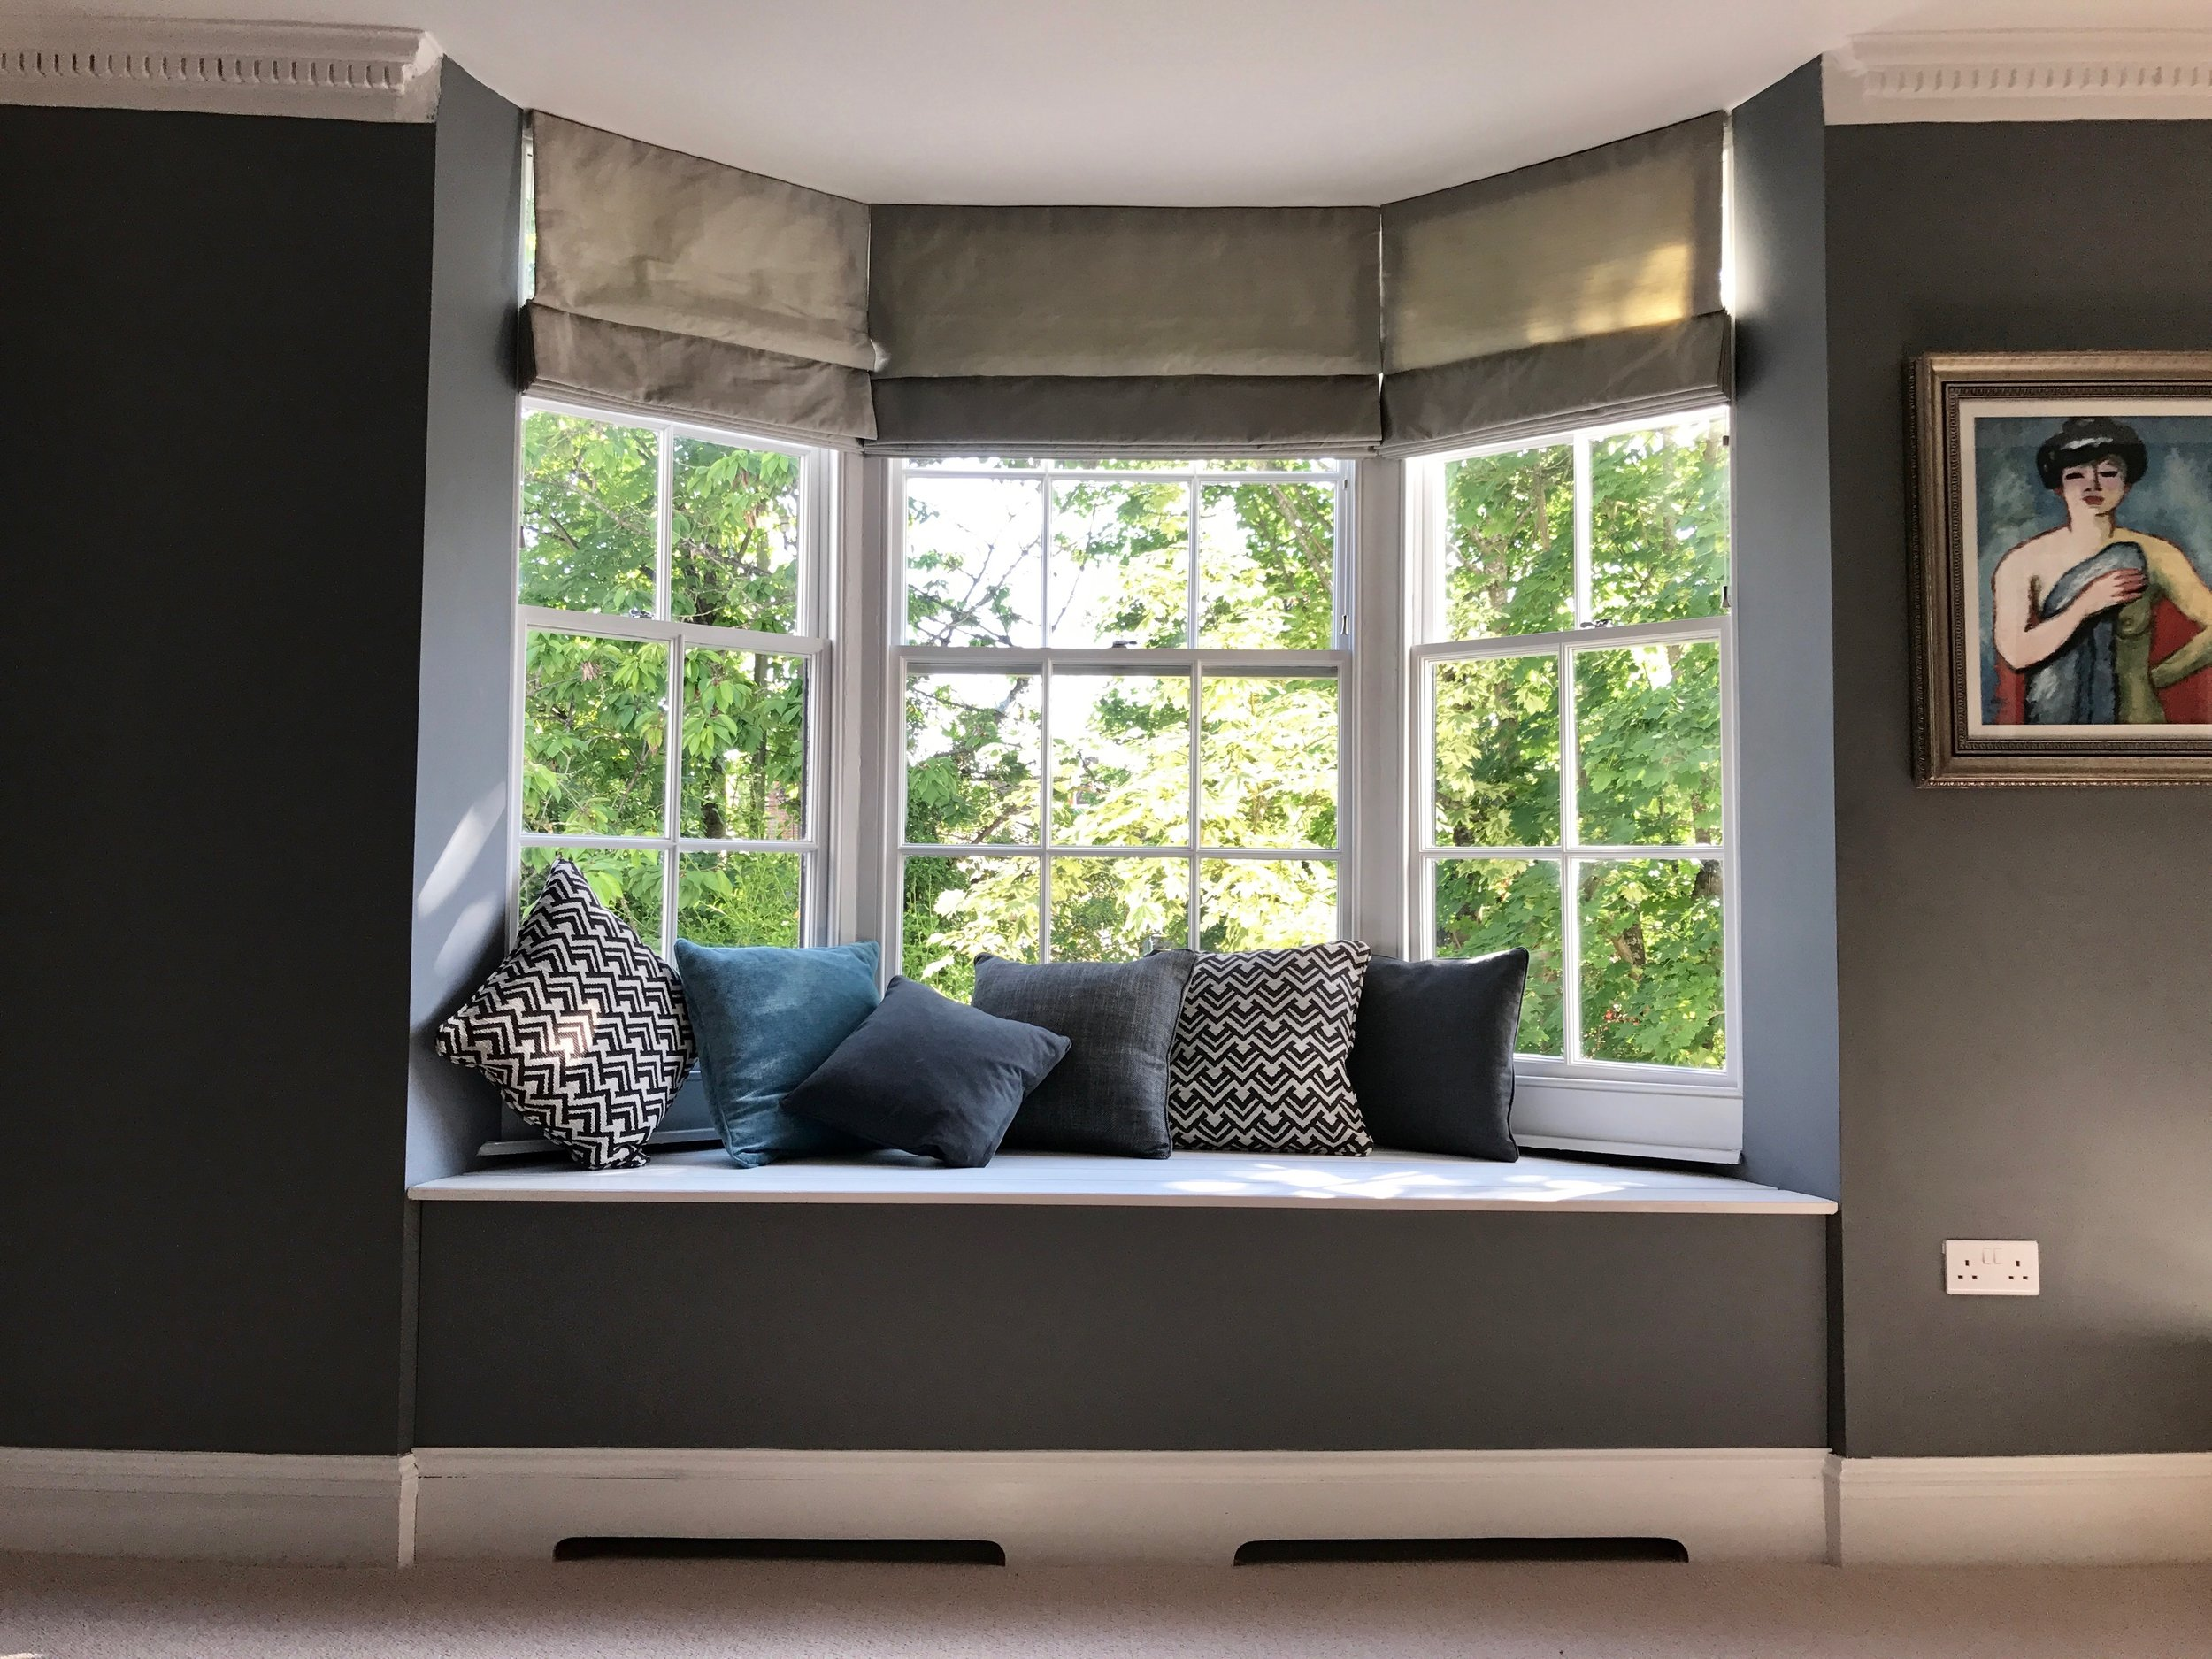 Residential Living Room Design.: Bespoke built bay  window seat, hand made soft furnishings & blind  & styling advice.